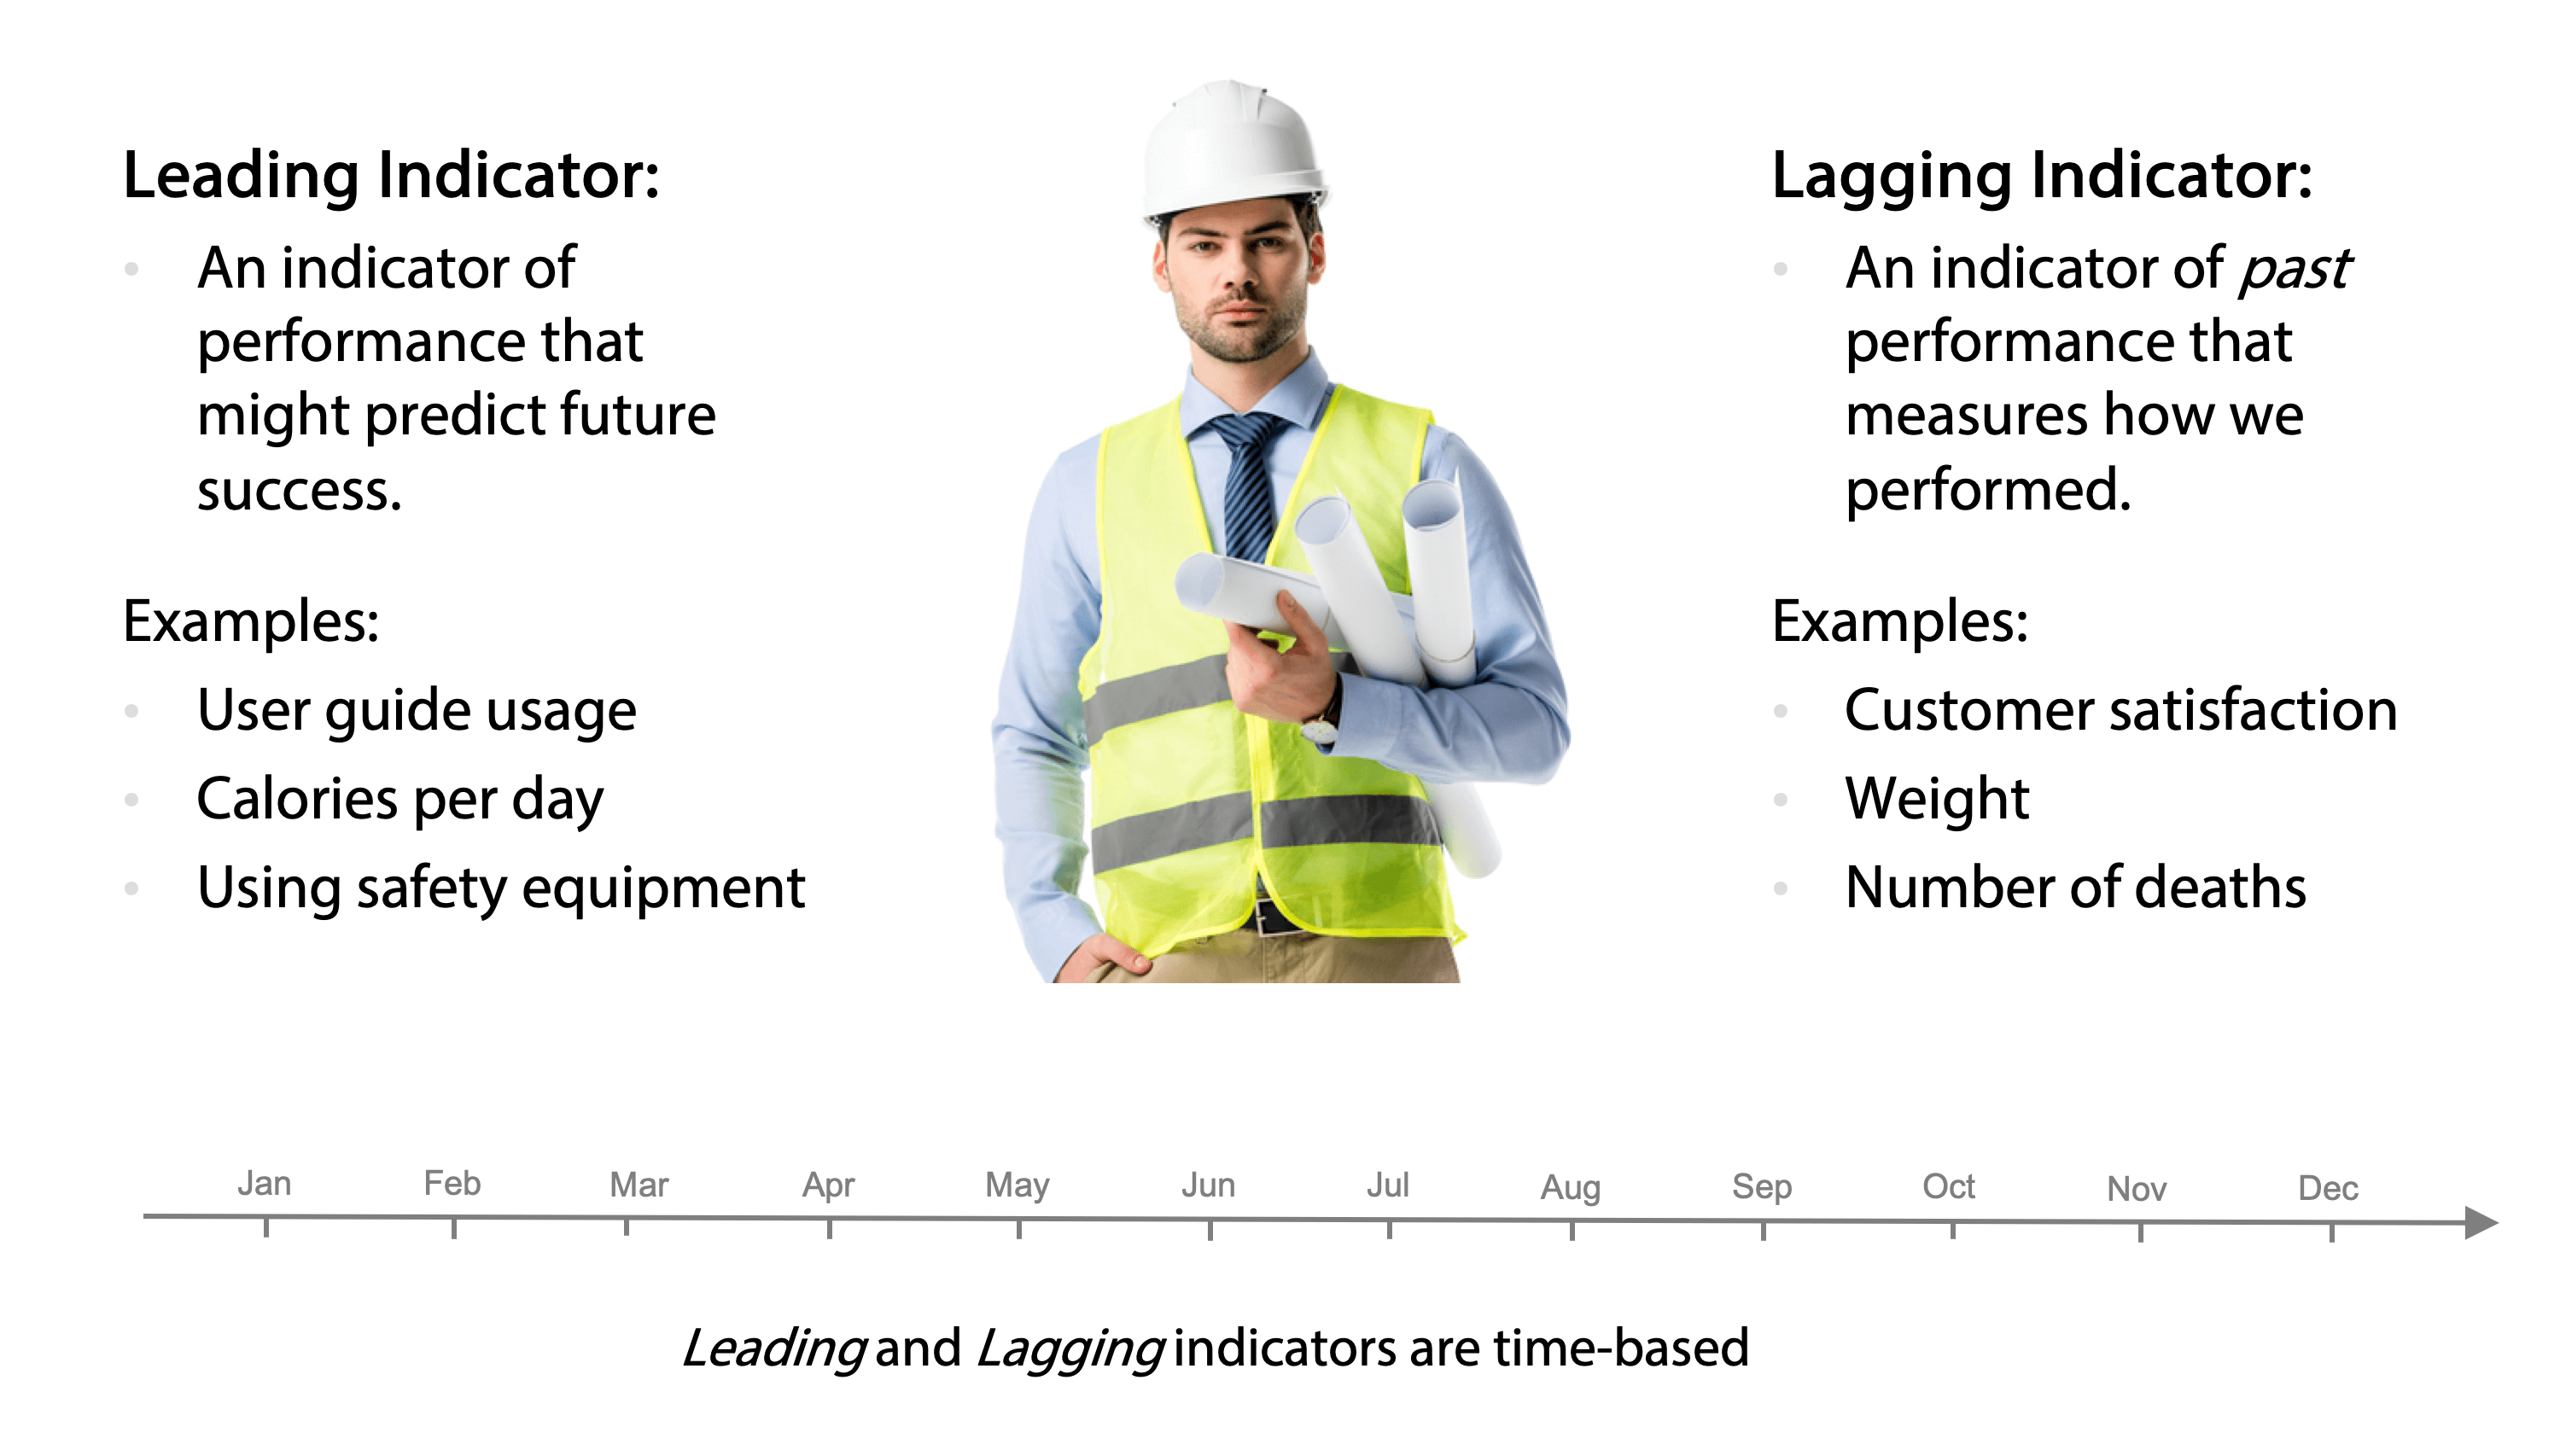 Lead and Lag Indicators